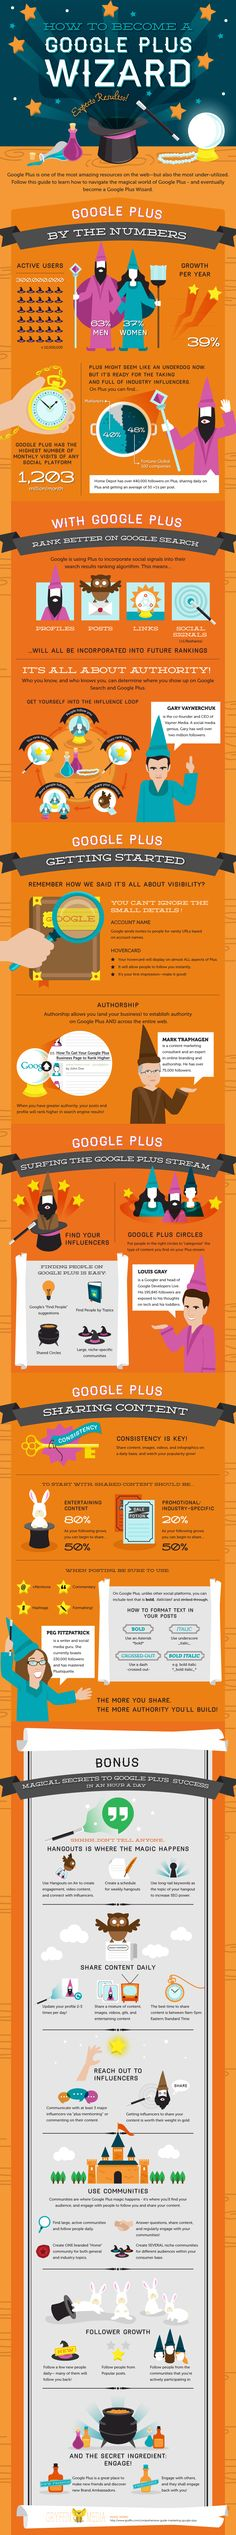 How to use #Google+ to Increase Brand Engagement